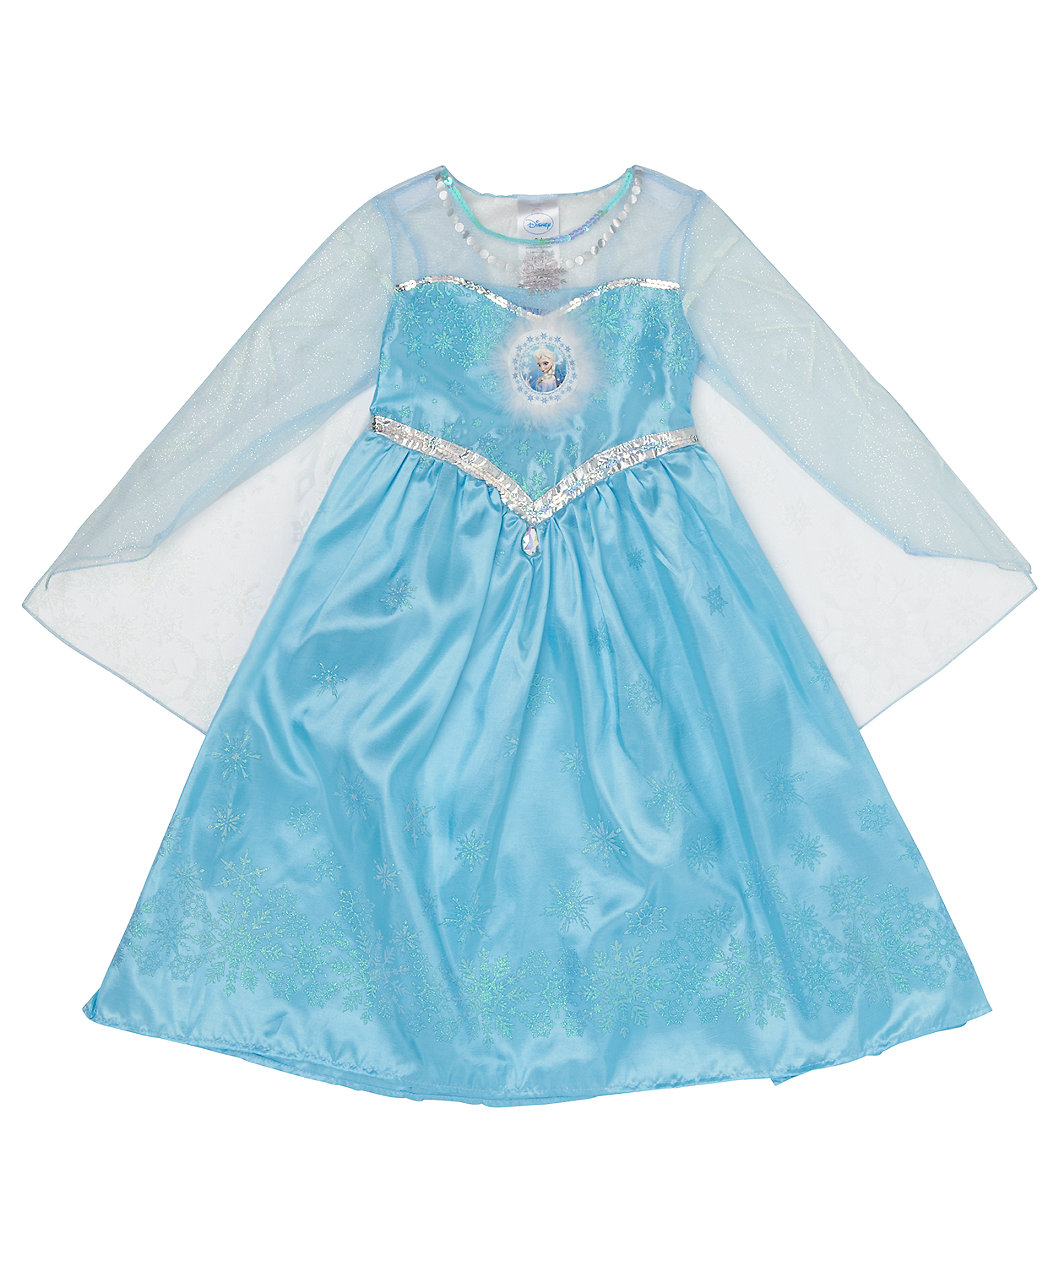 ecfb7135efe6e Disney Frozen Elsa Dress 3-4yrs